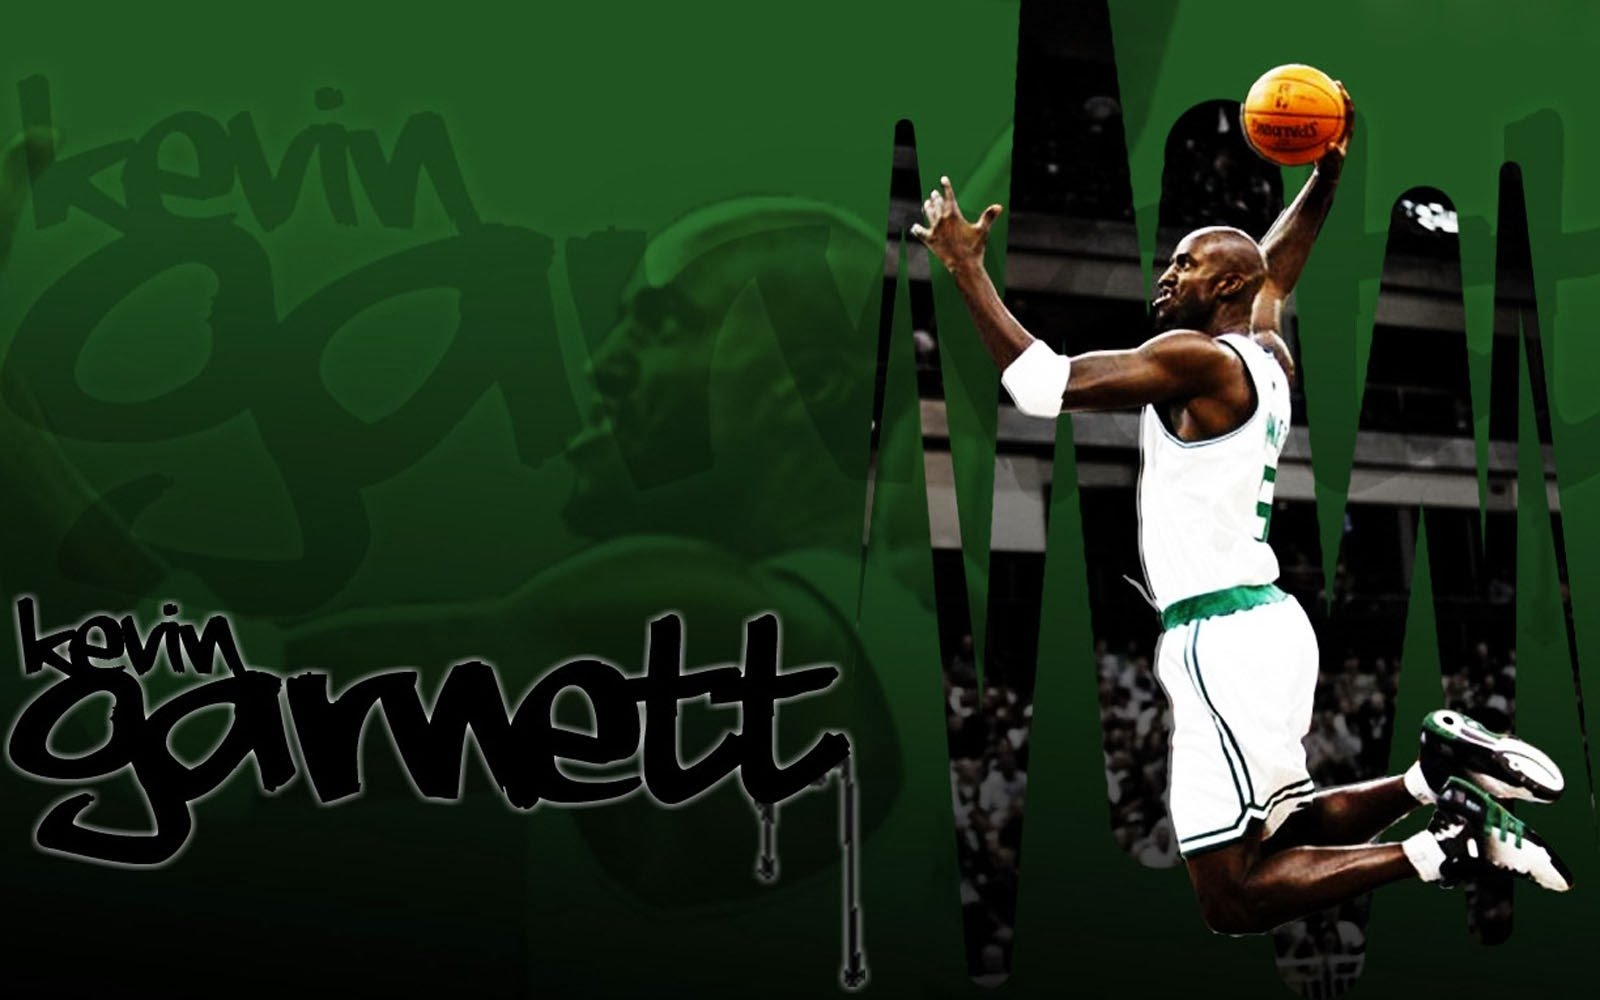 wallpapers Kevin Garnett Wallpapers 1600x1000